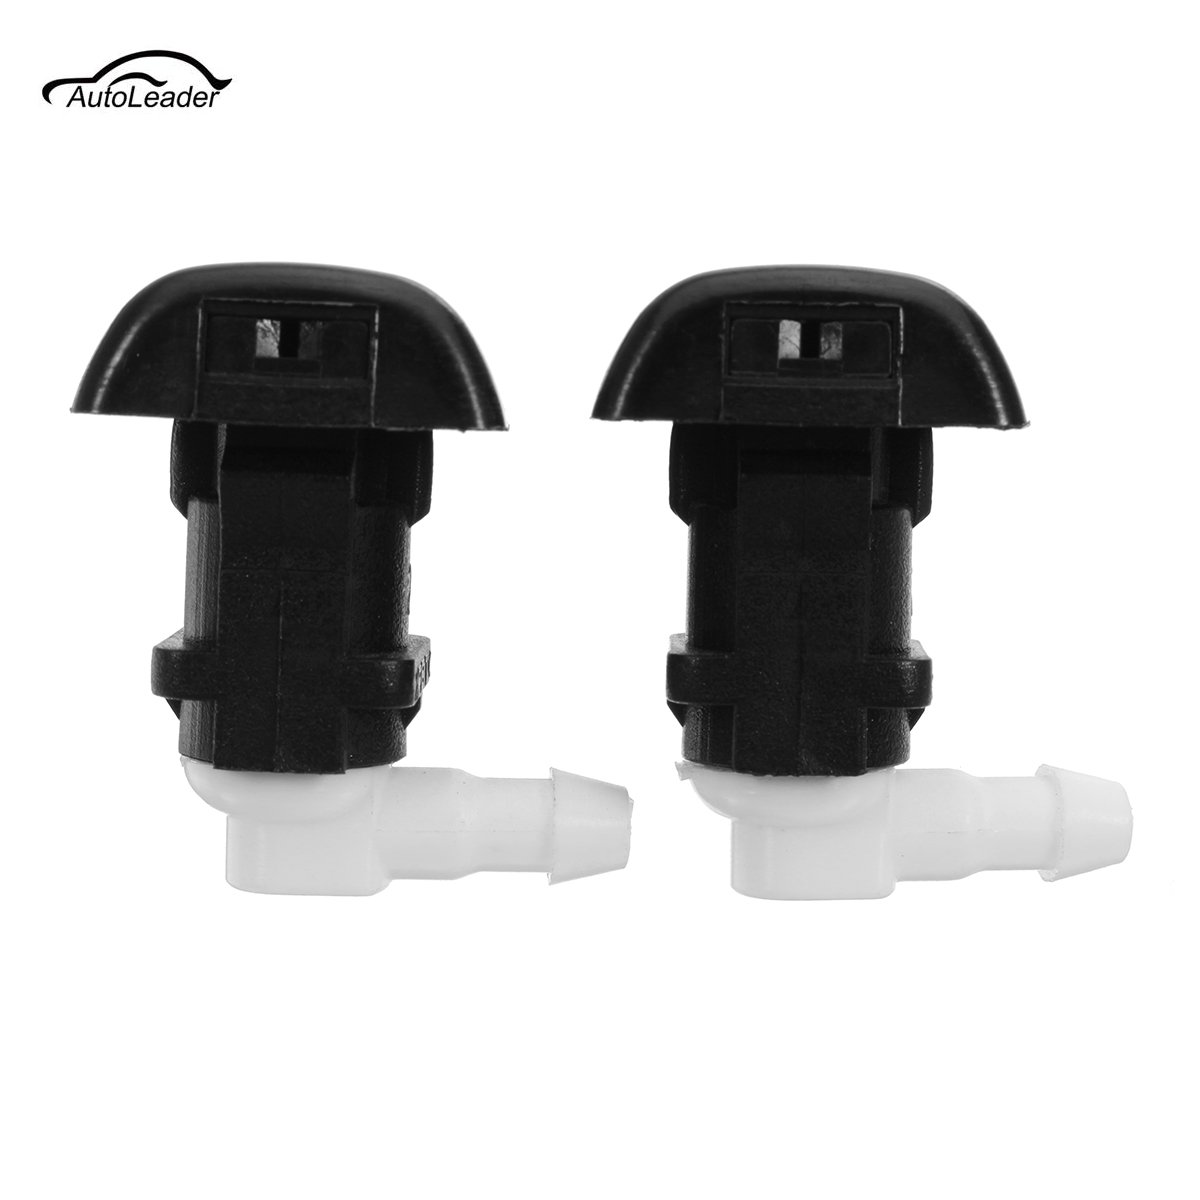 Cadillac Cts Windshield Replacement: 2Pcs Car Window Windshield Washer Spray Nozzle Wiper 15778747 For Cadillac SRX 2004 2009